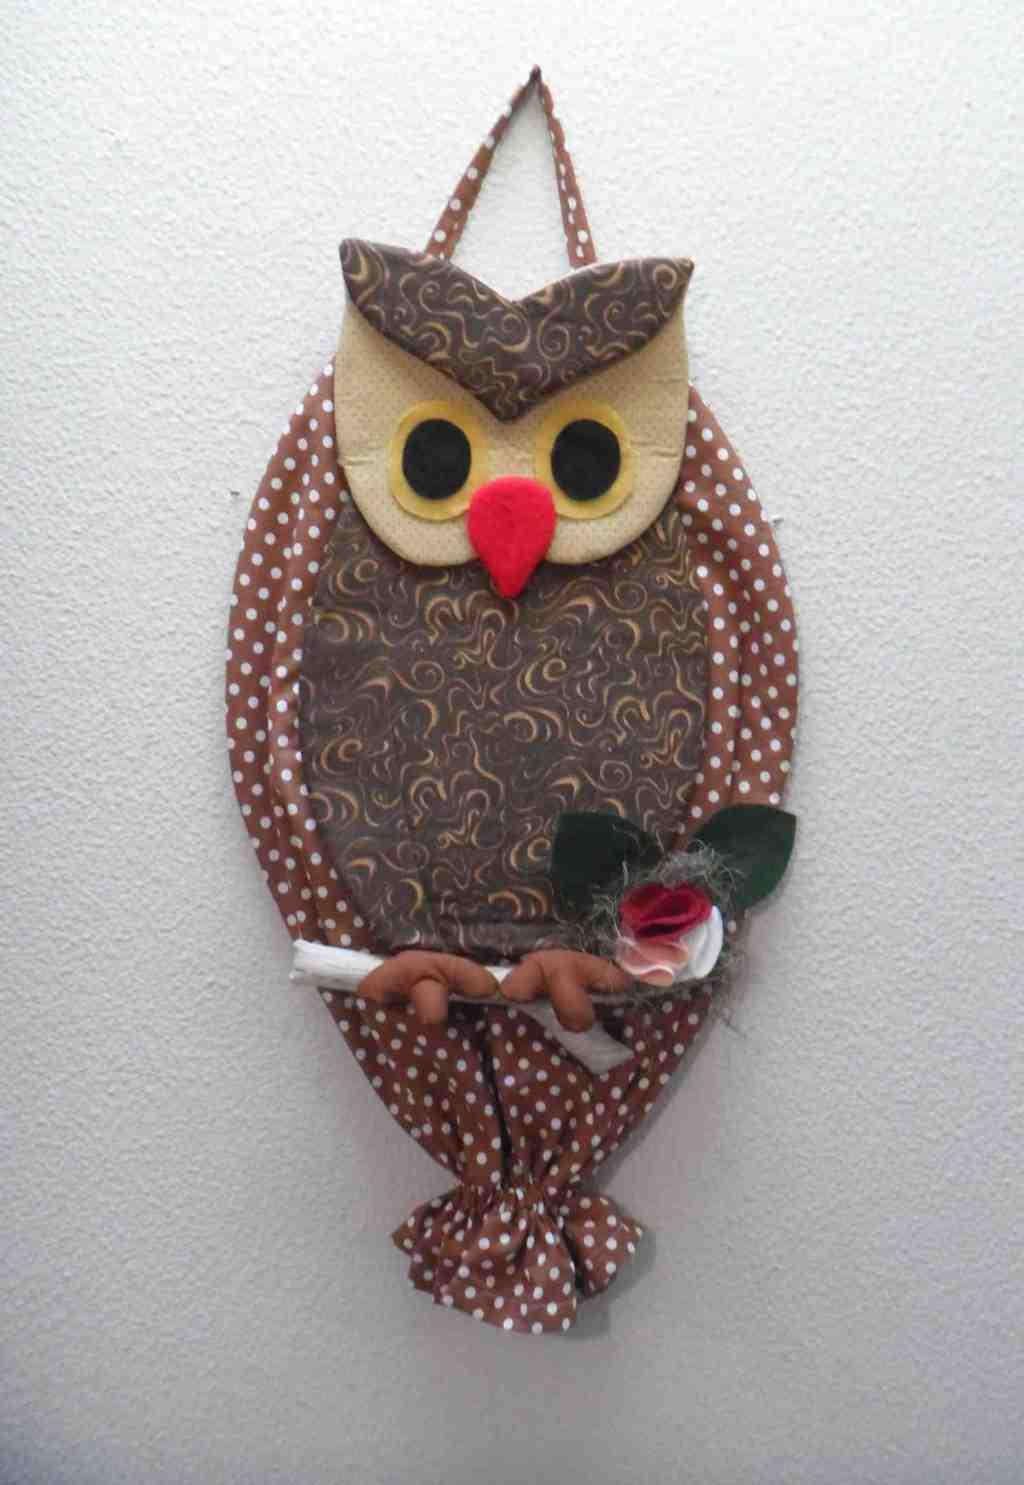 Pulling Owl Bag: 60 ideas with photos and video step by step 28